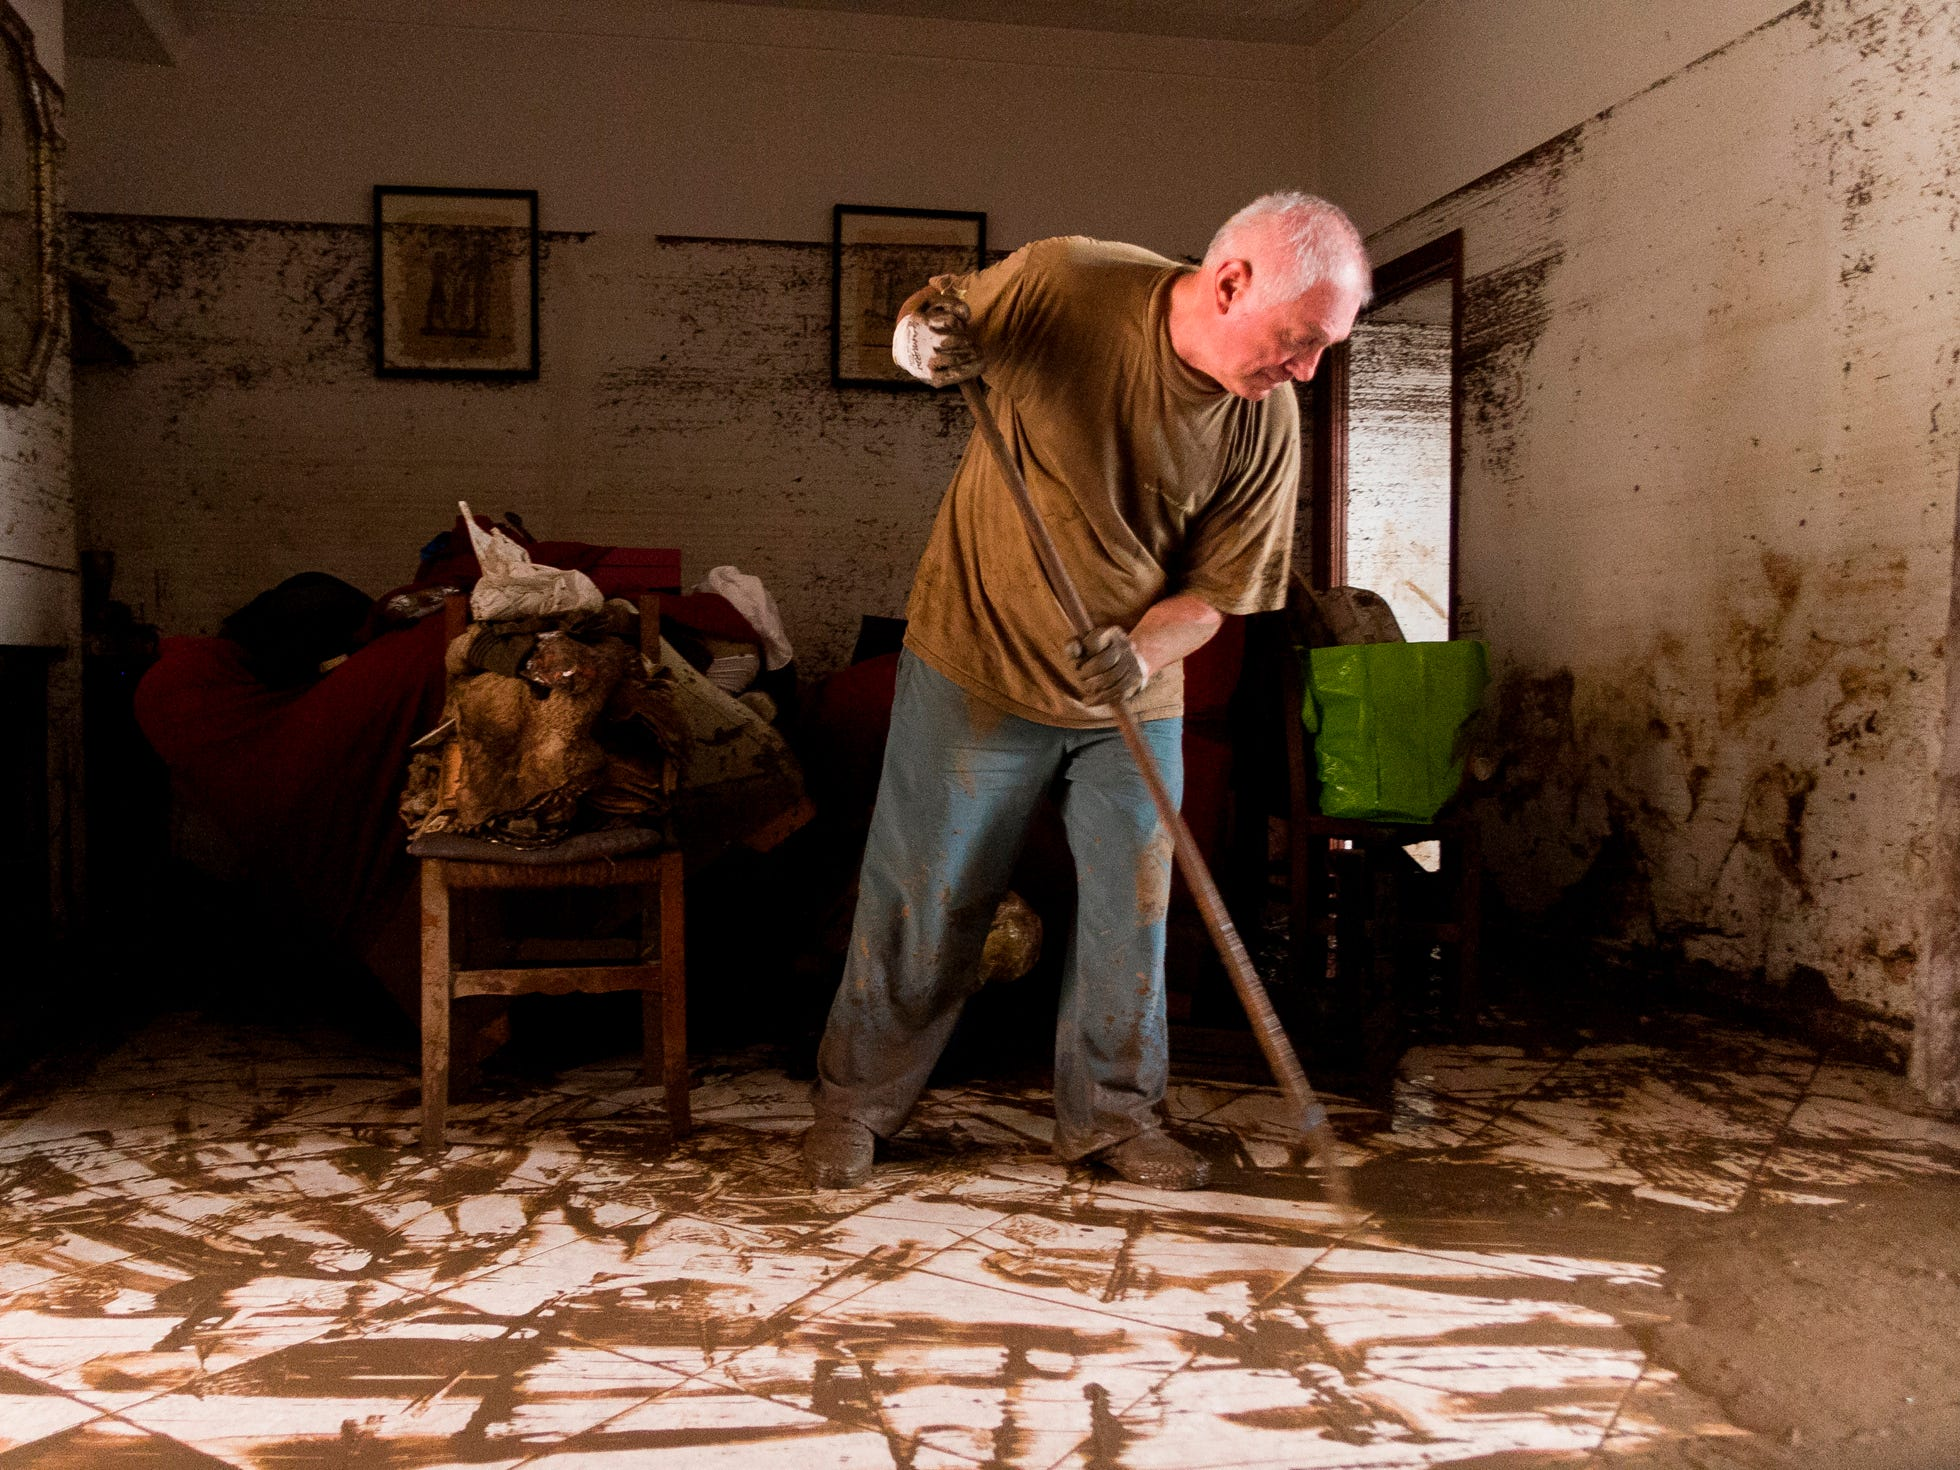 A man cleans his house after flooding in Sant Llorenc, the town hardest hit by the downpours located 40 miles east of Mallorca's capital, Palma, Spain, Wednesday, Oct. 10, 2018.